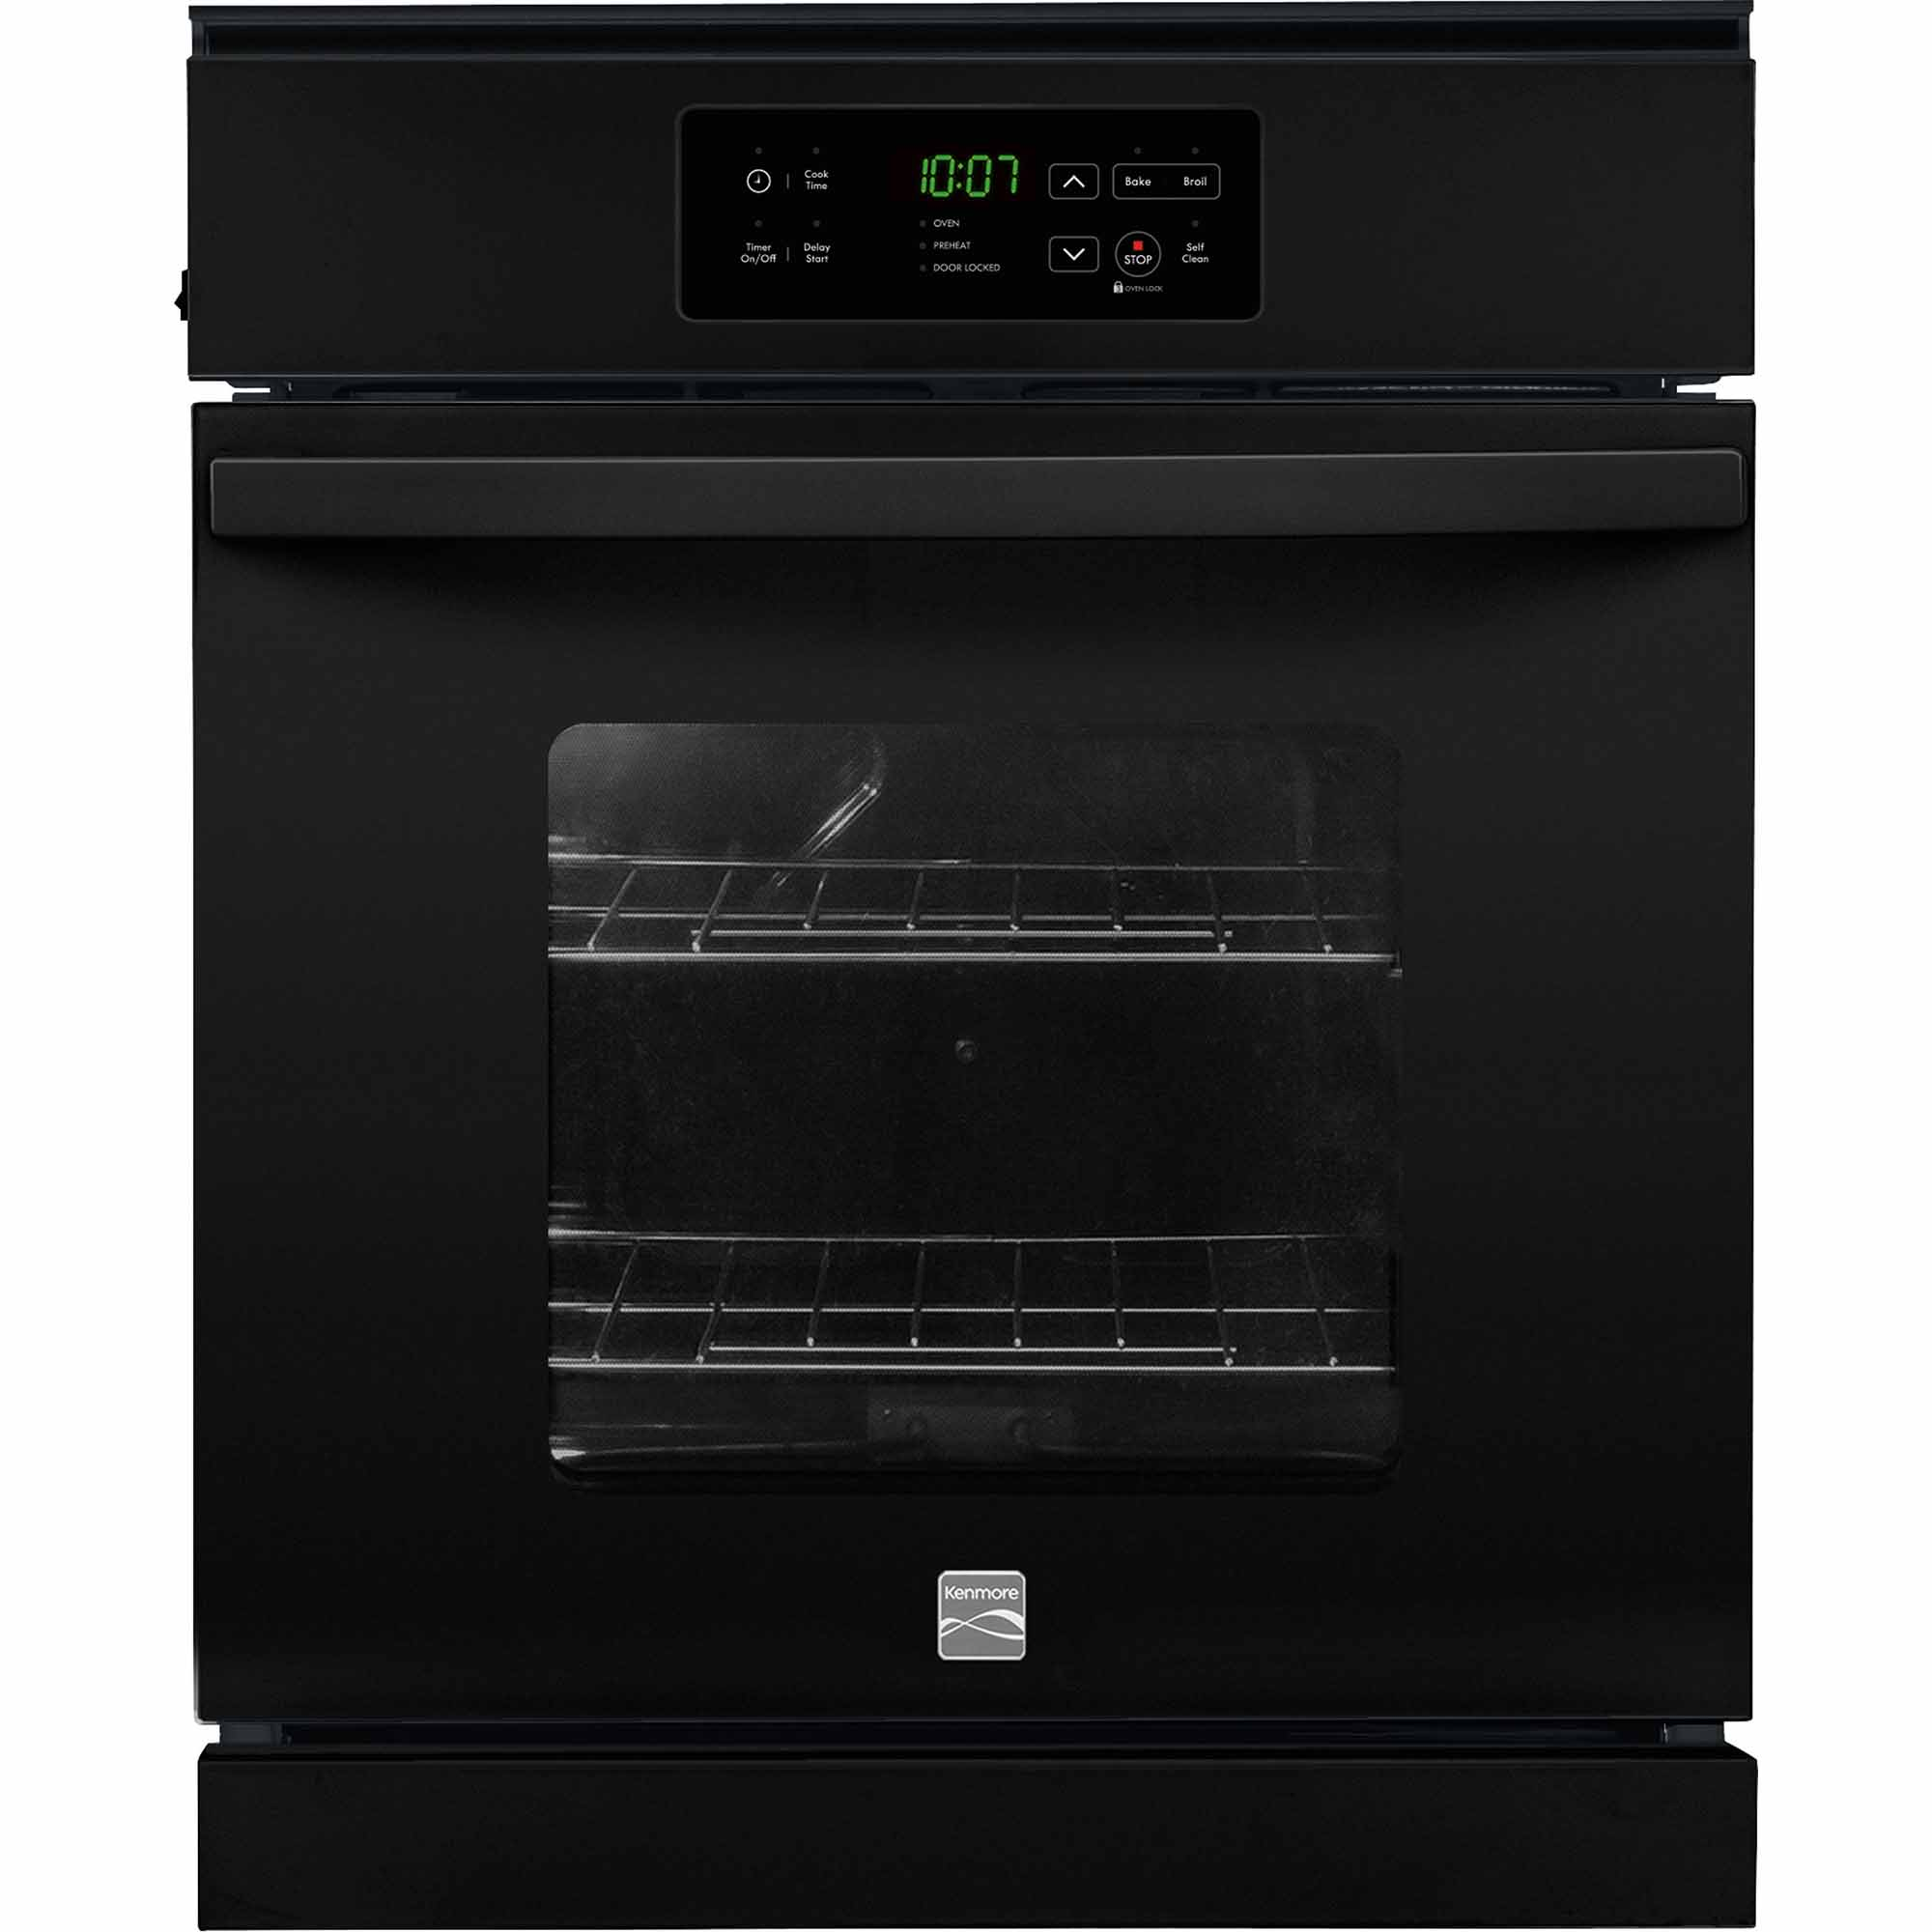 Kenmore 40289 33 cu ft Electric Wall Oven  Black